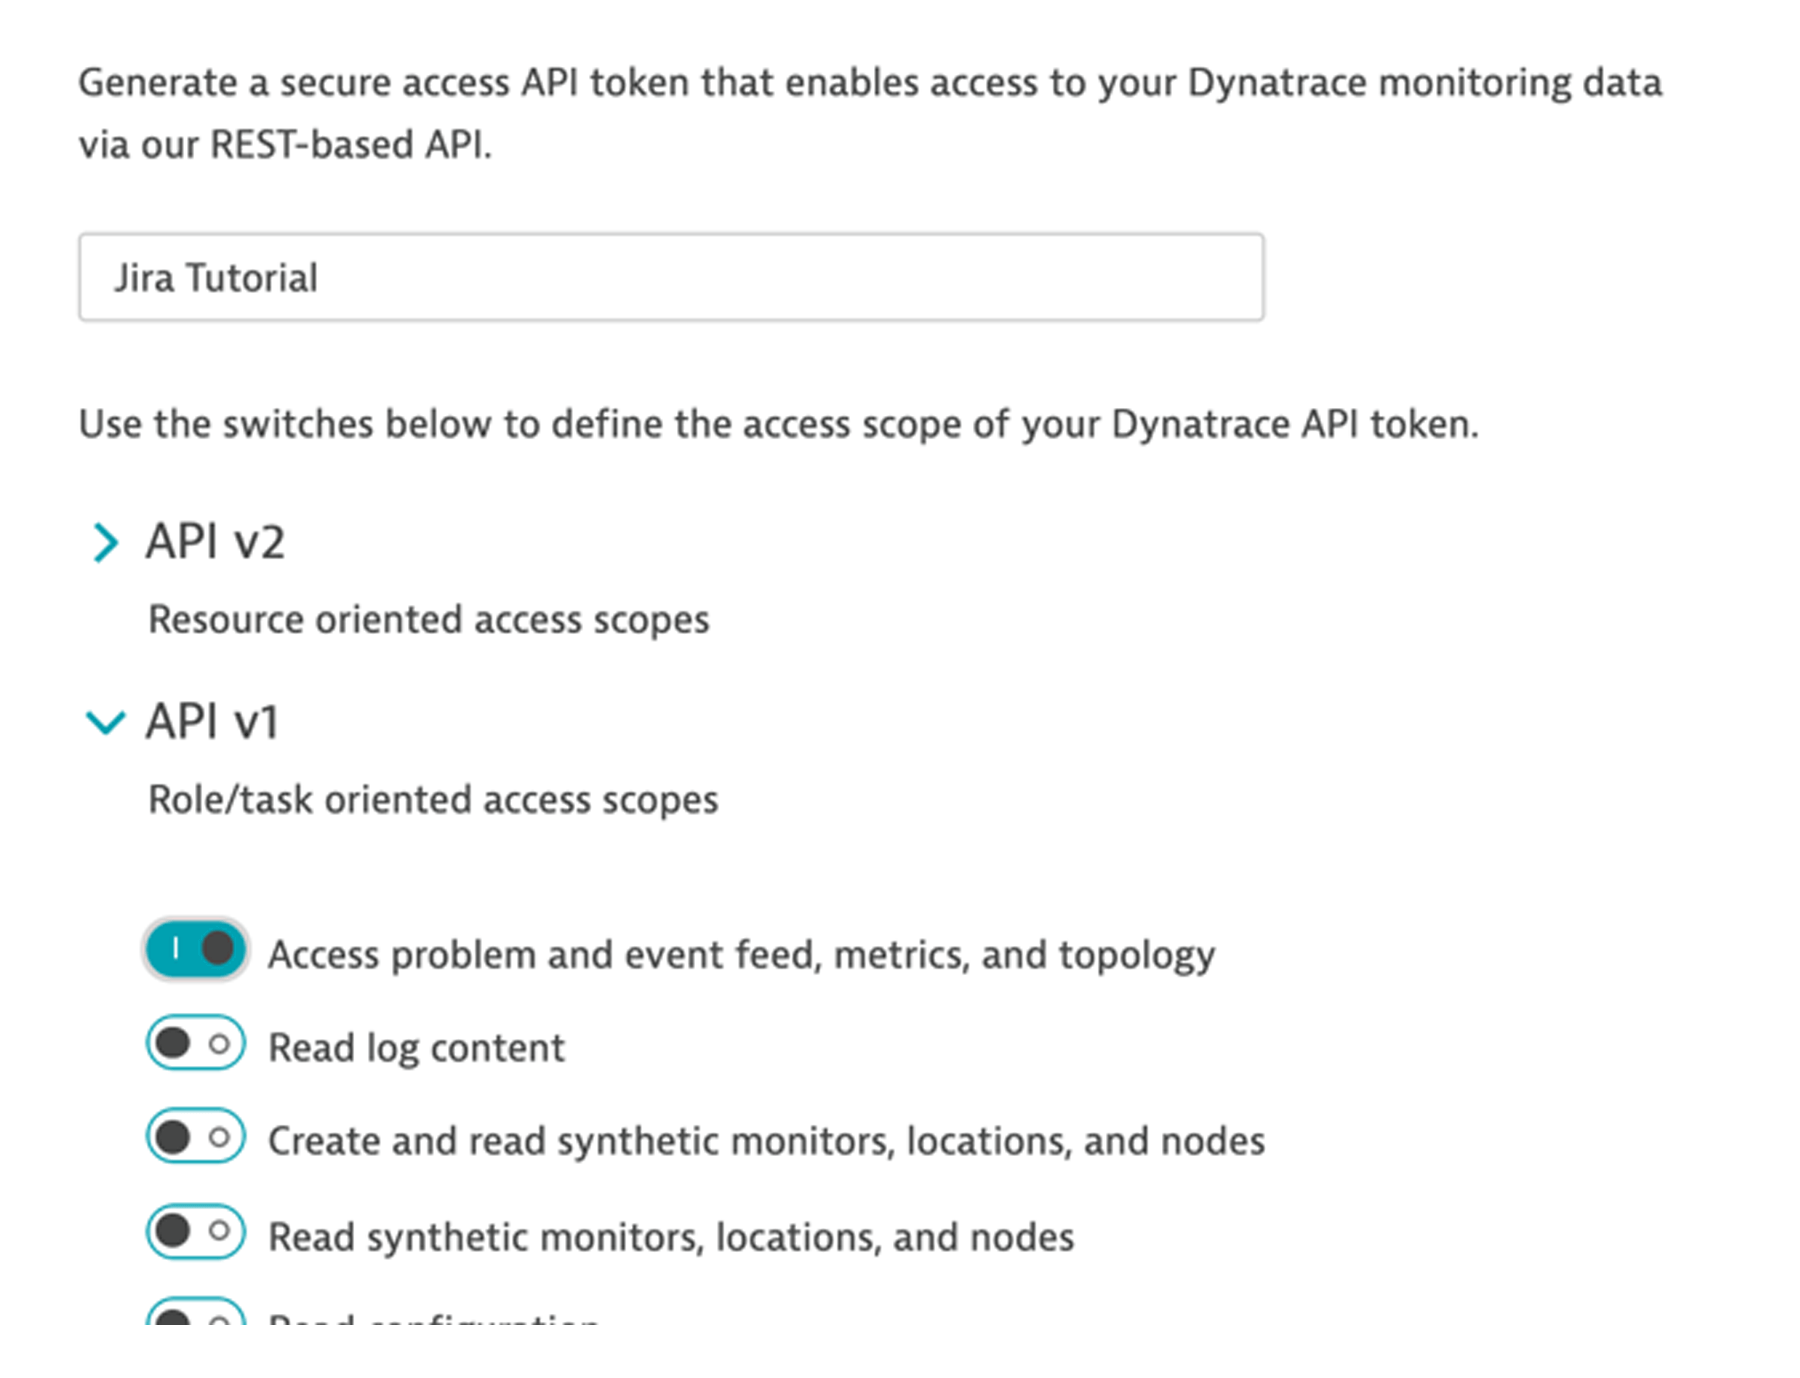 Access problem feed, metrics, and topology toggle